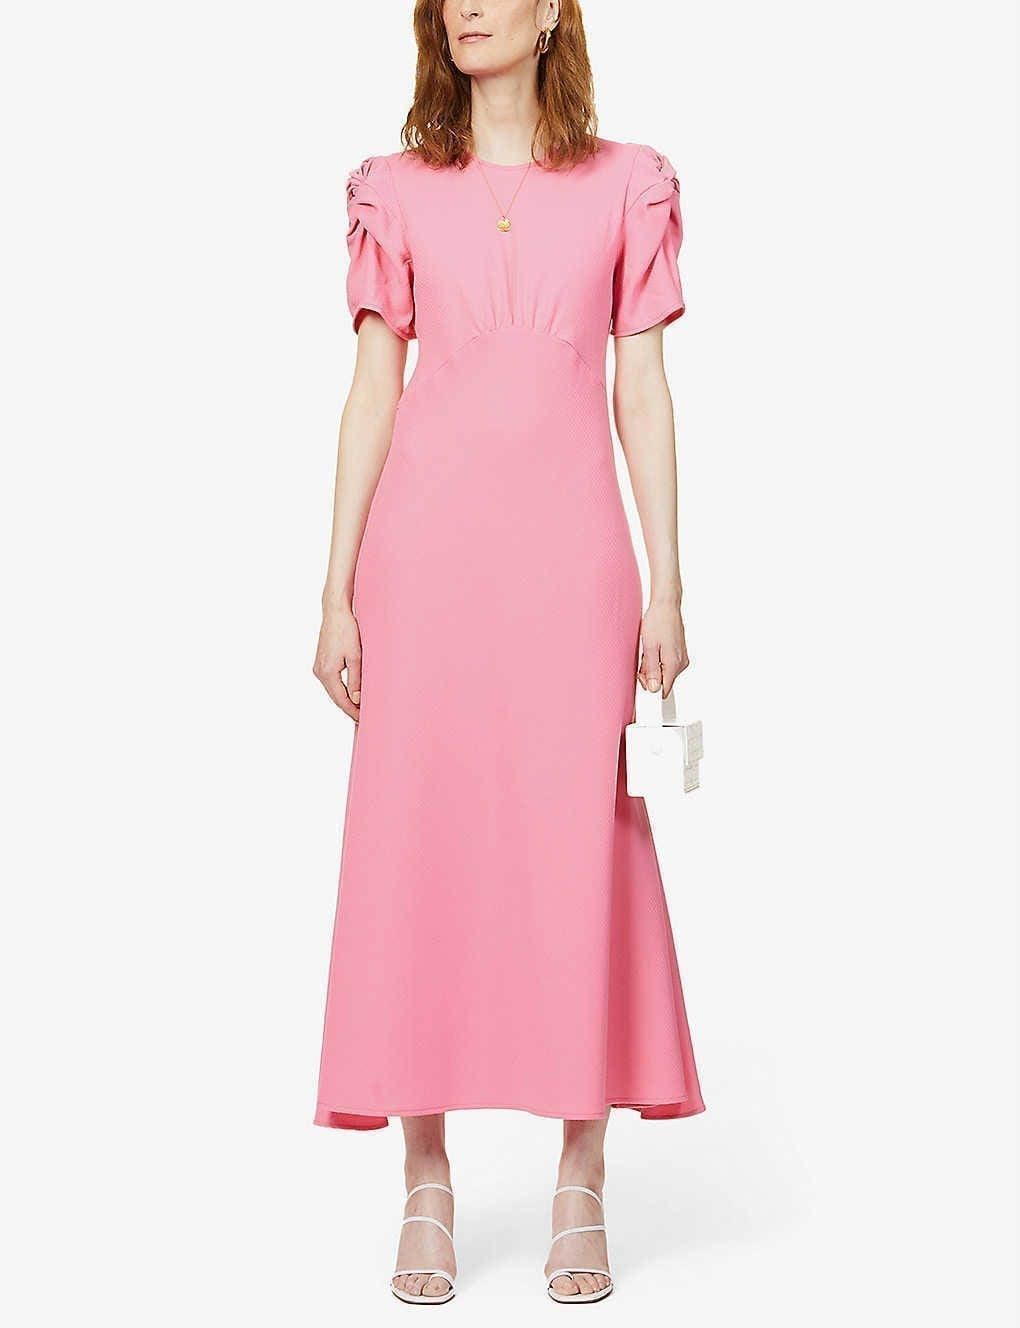 MAGGIE MARILYN It's Up To You Short-sleeved Wool Midi Dress